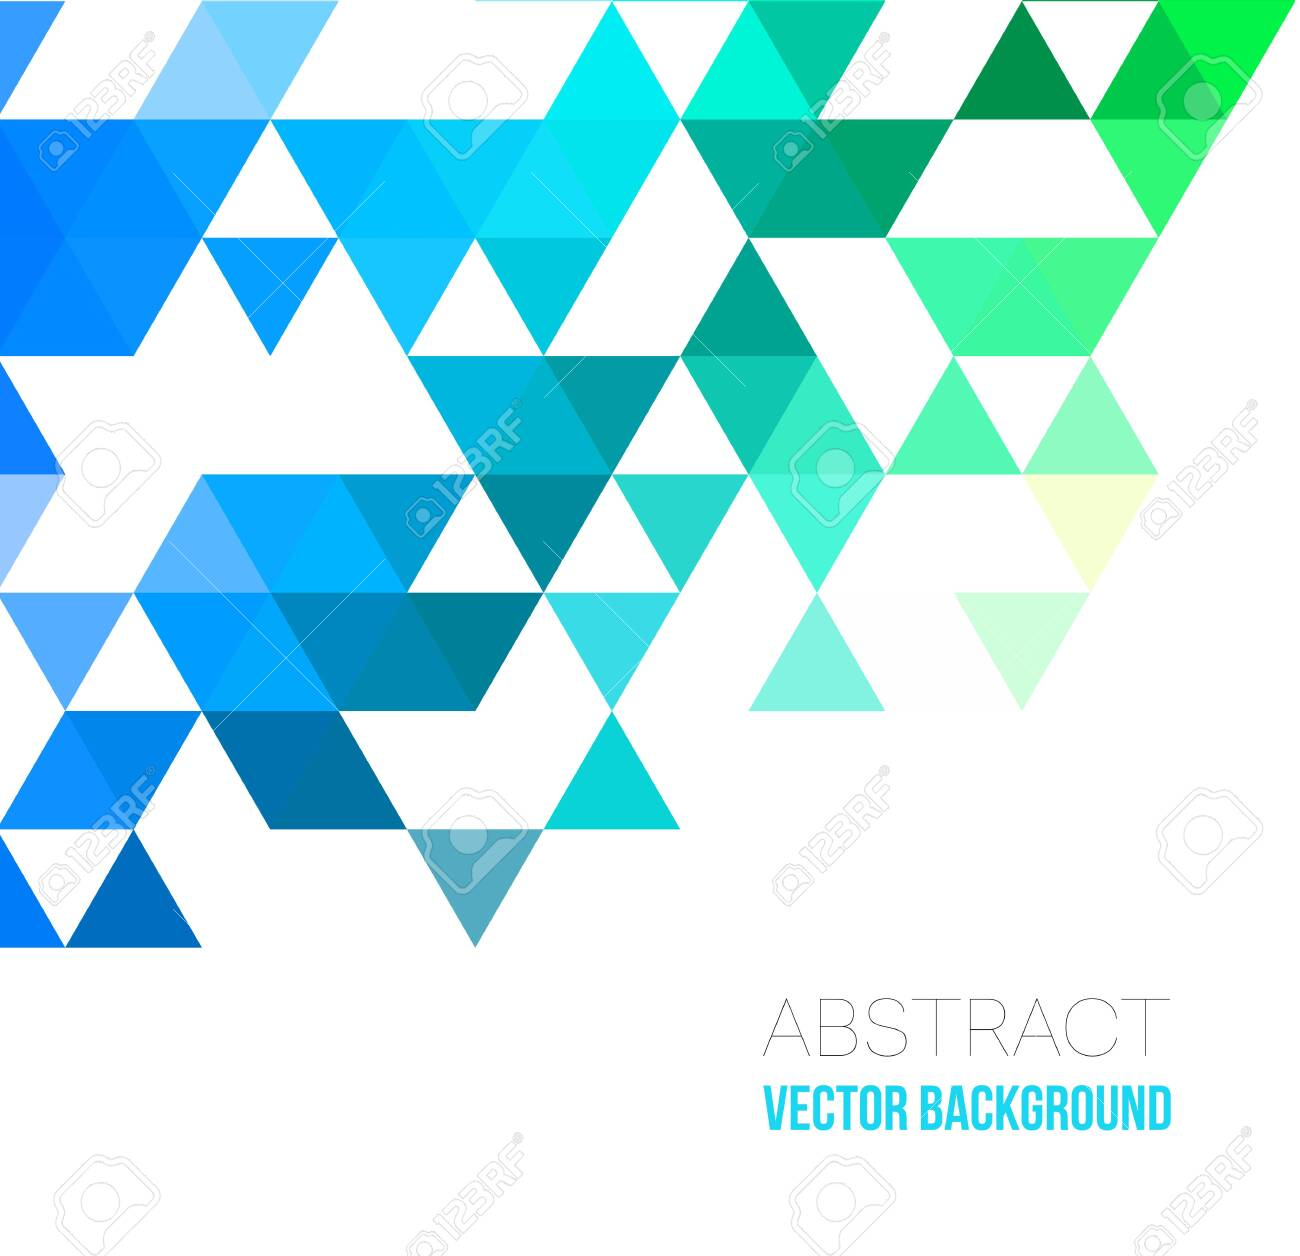 Vector Abstract geometric background with triangles. Vector illustration for your web design, desktop wallpaper or website. - 120534573